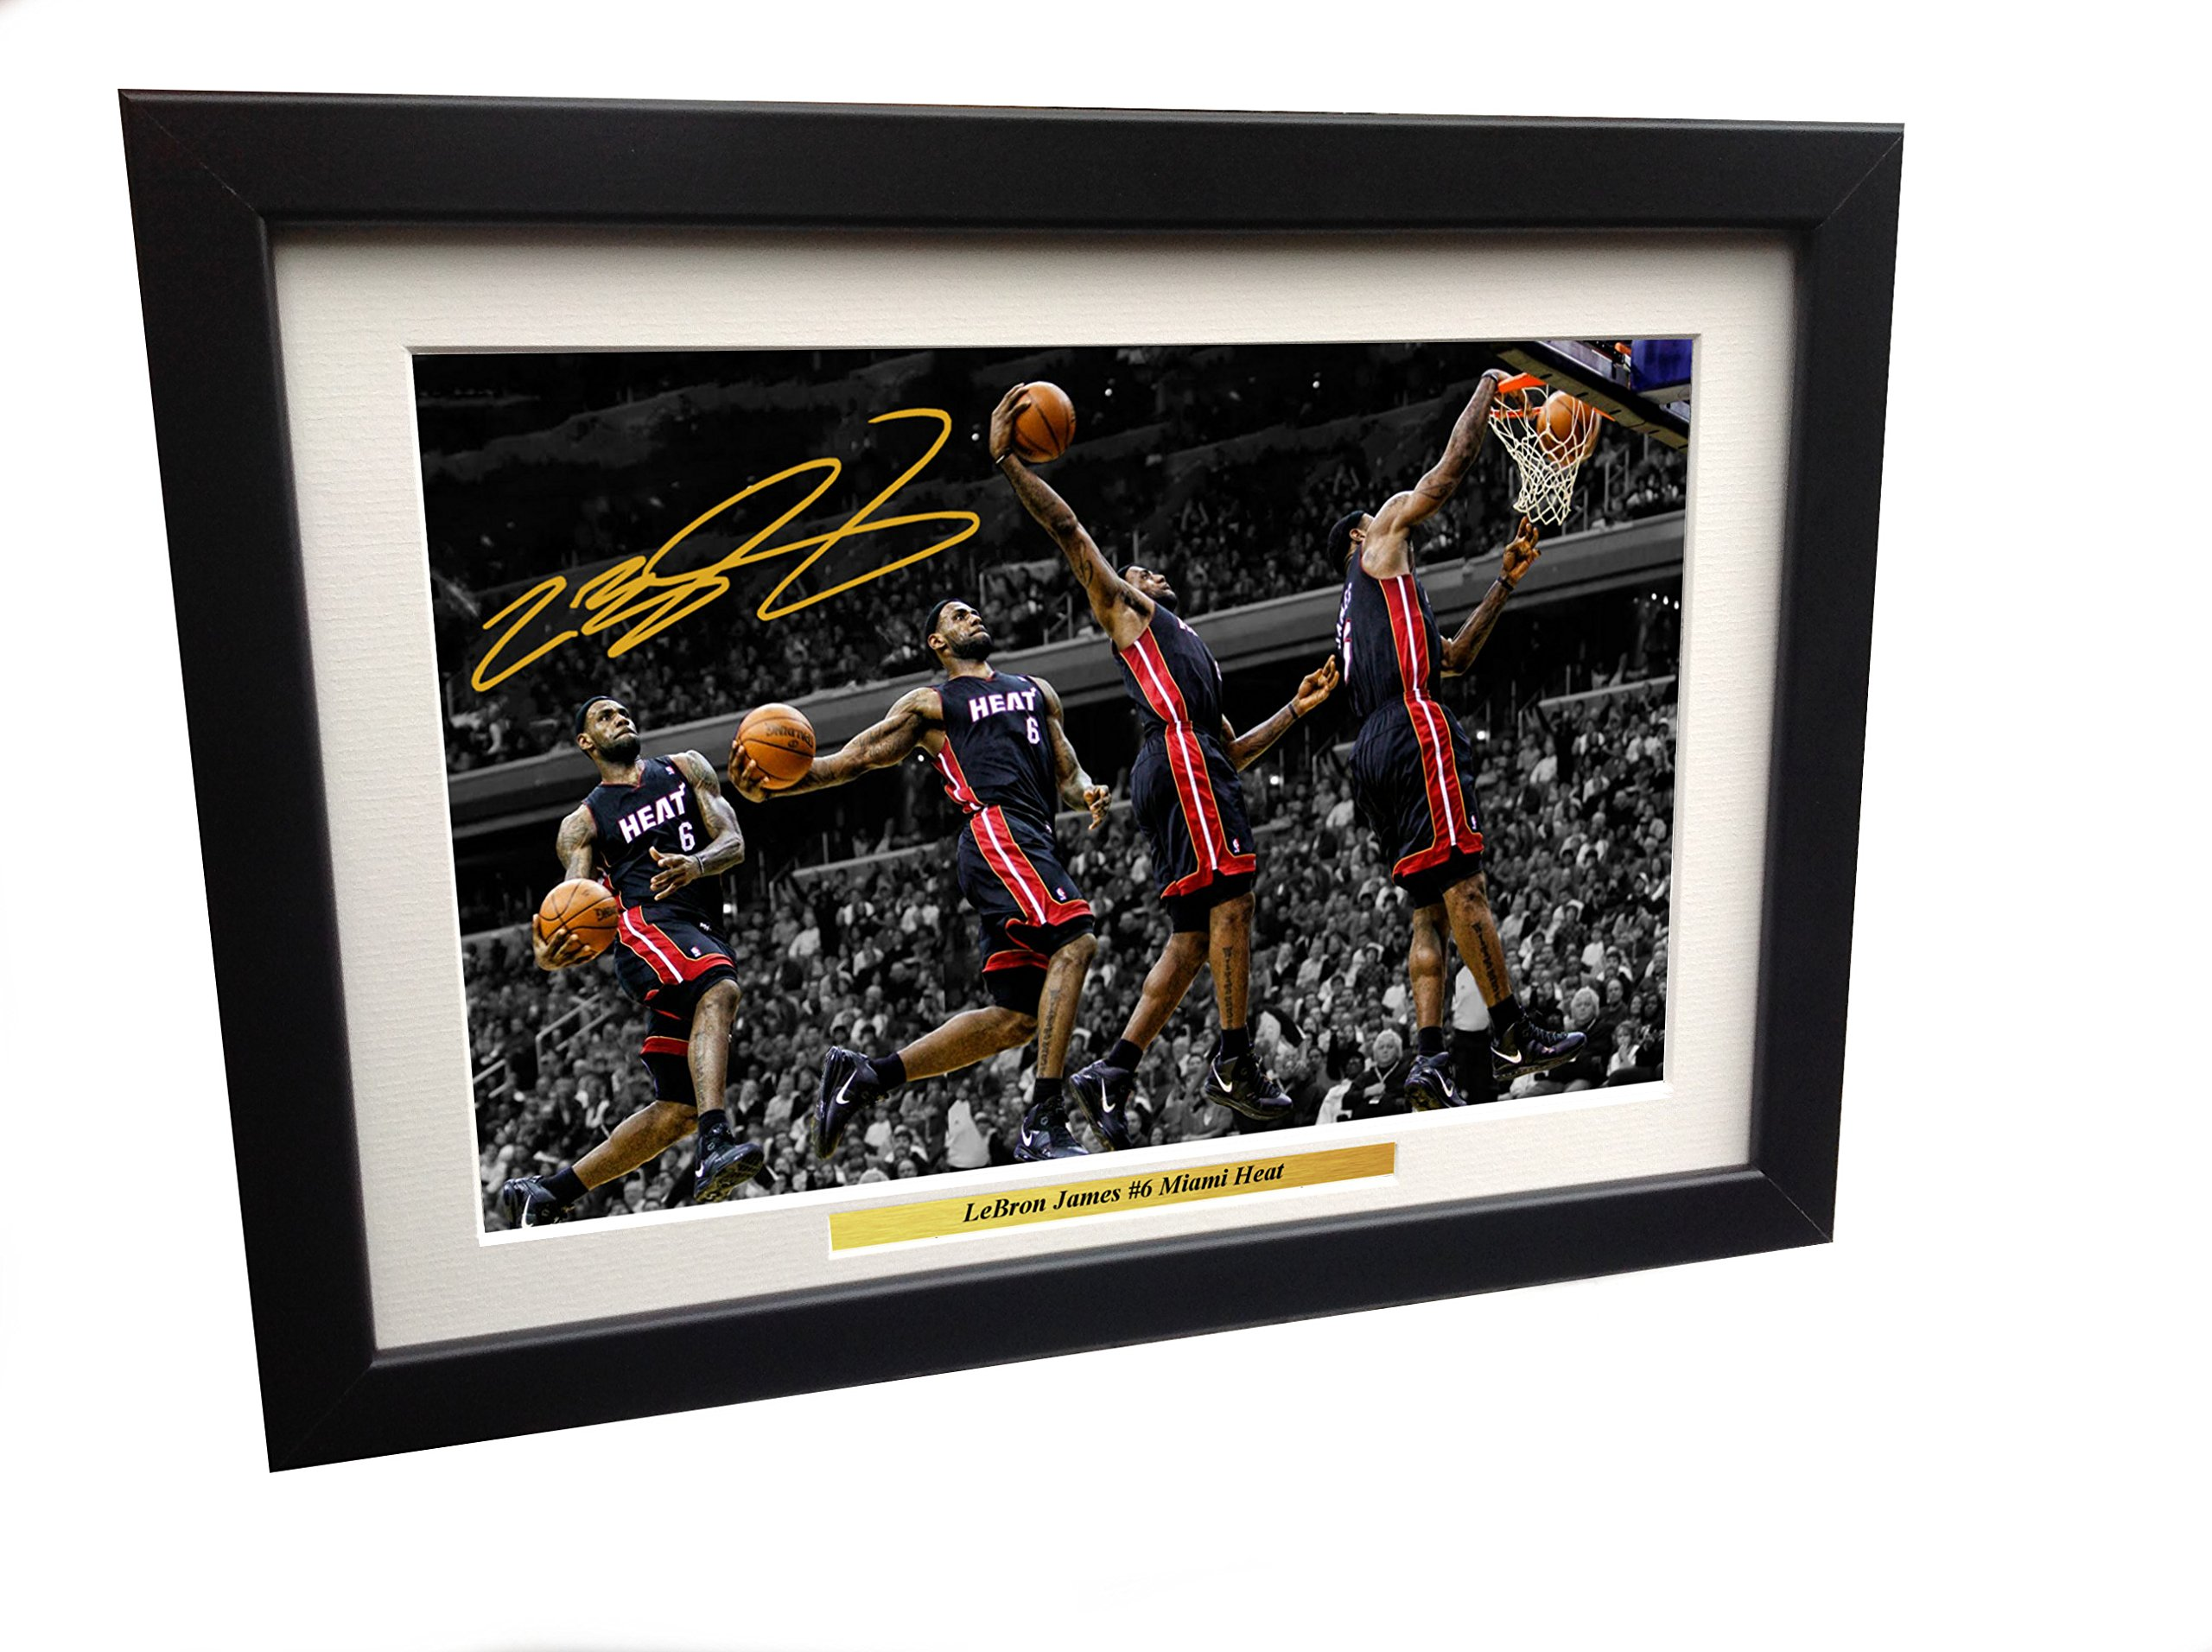 LeBron James #6 Miami Heat 12x8 A4 Signed - Basketball Autographed Photo Photograph Picture Frame NBA Gift Ref:1 by Kicks